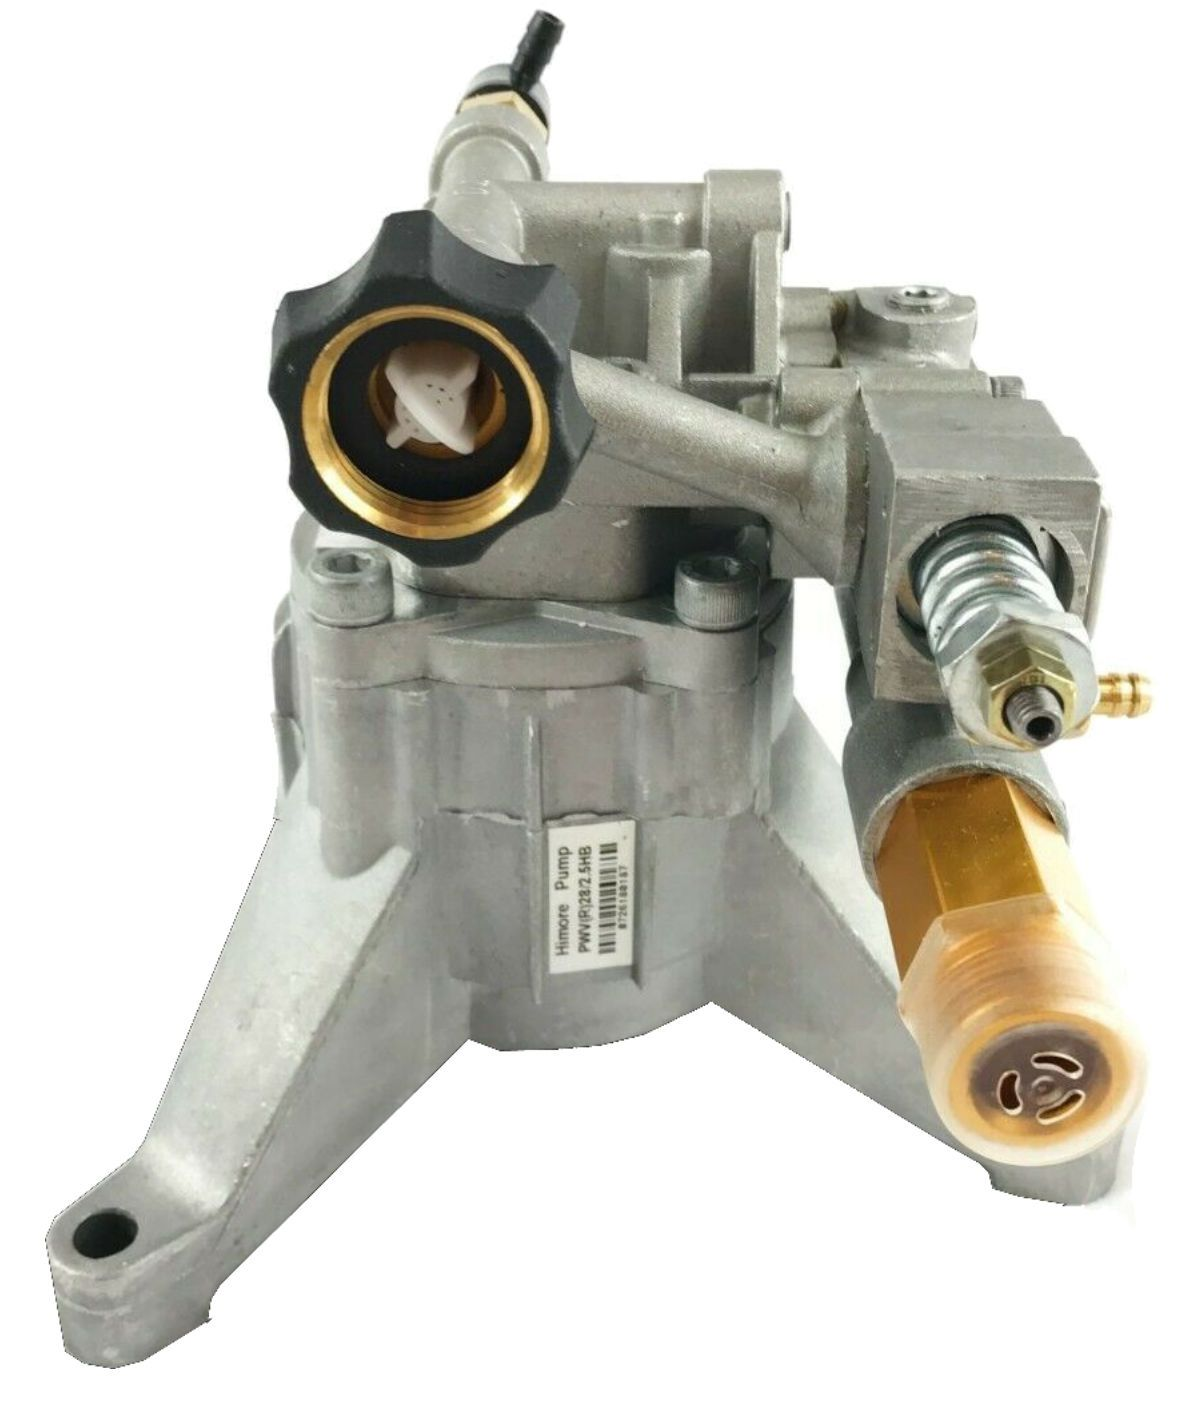 2700 PSI PRESSURE WASHER WATER PUMP Brute 020359-0 020375-0 - AE-Power